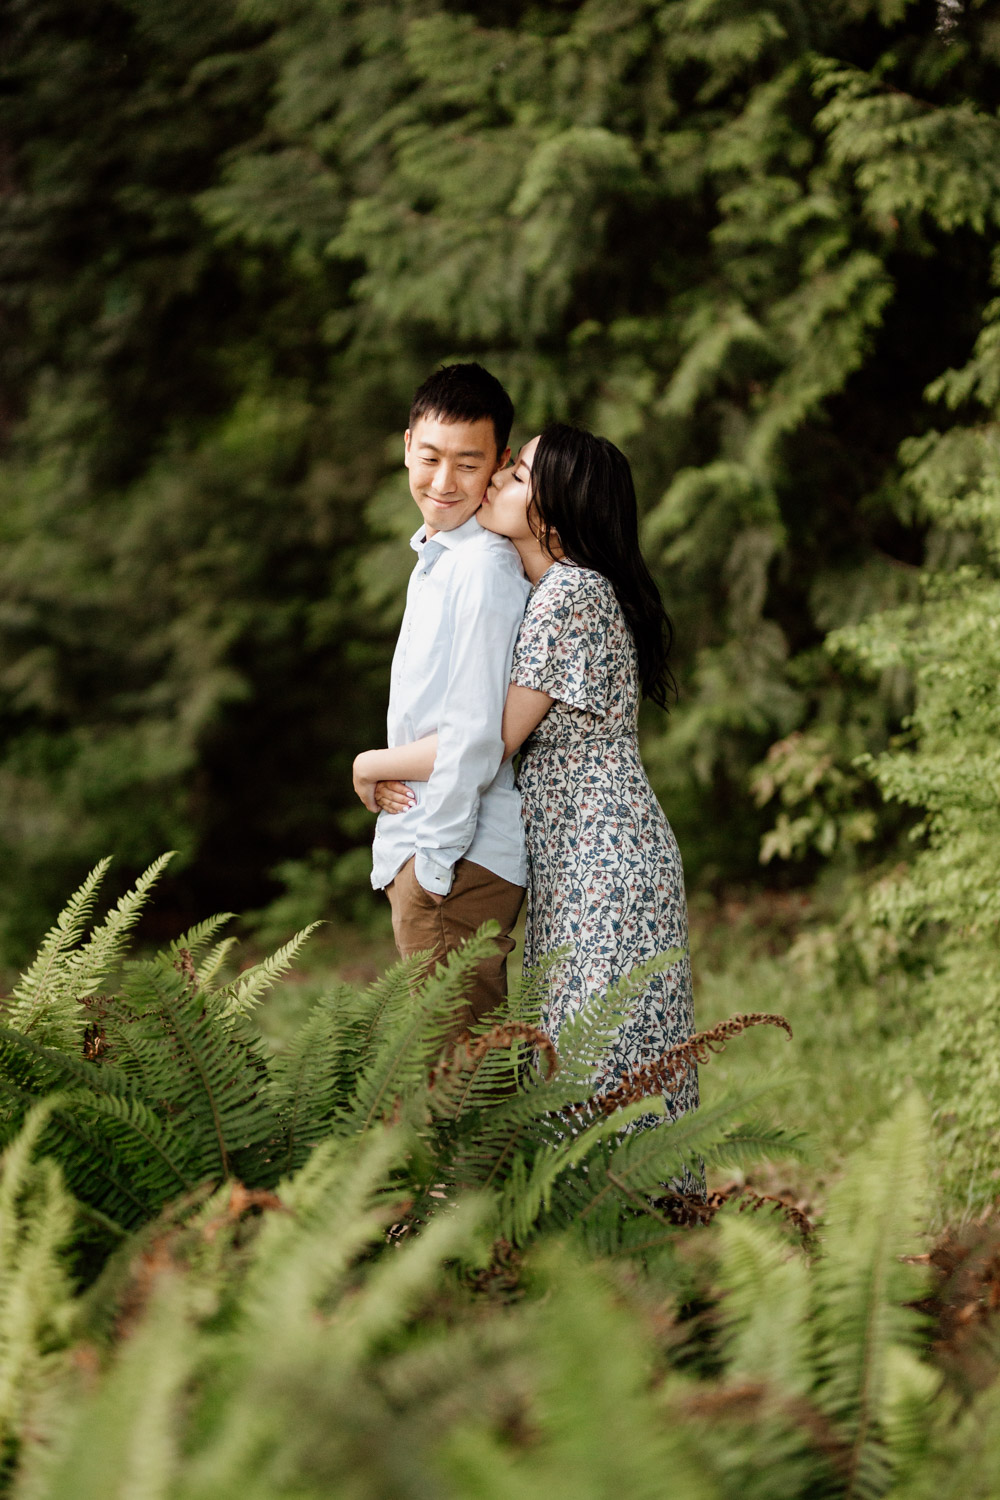 stanley park engagement photography in vancouver bc during sunset or golden hour at rose garden